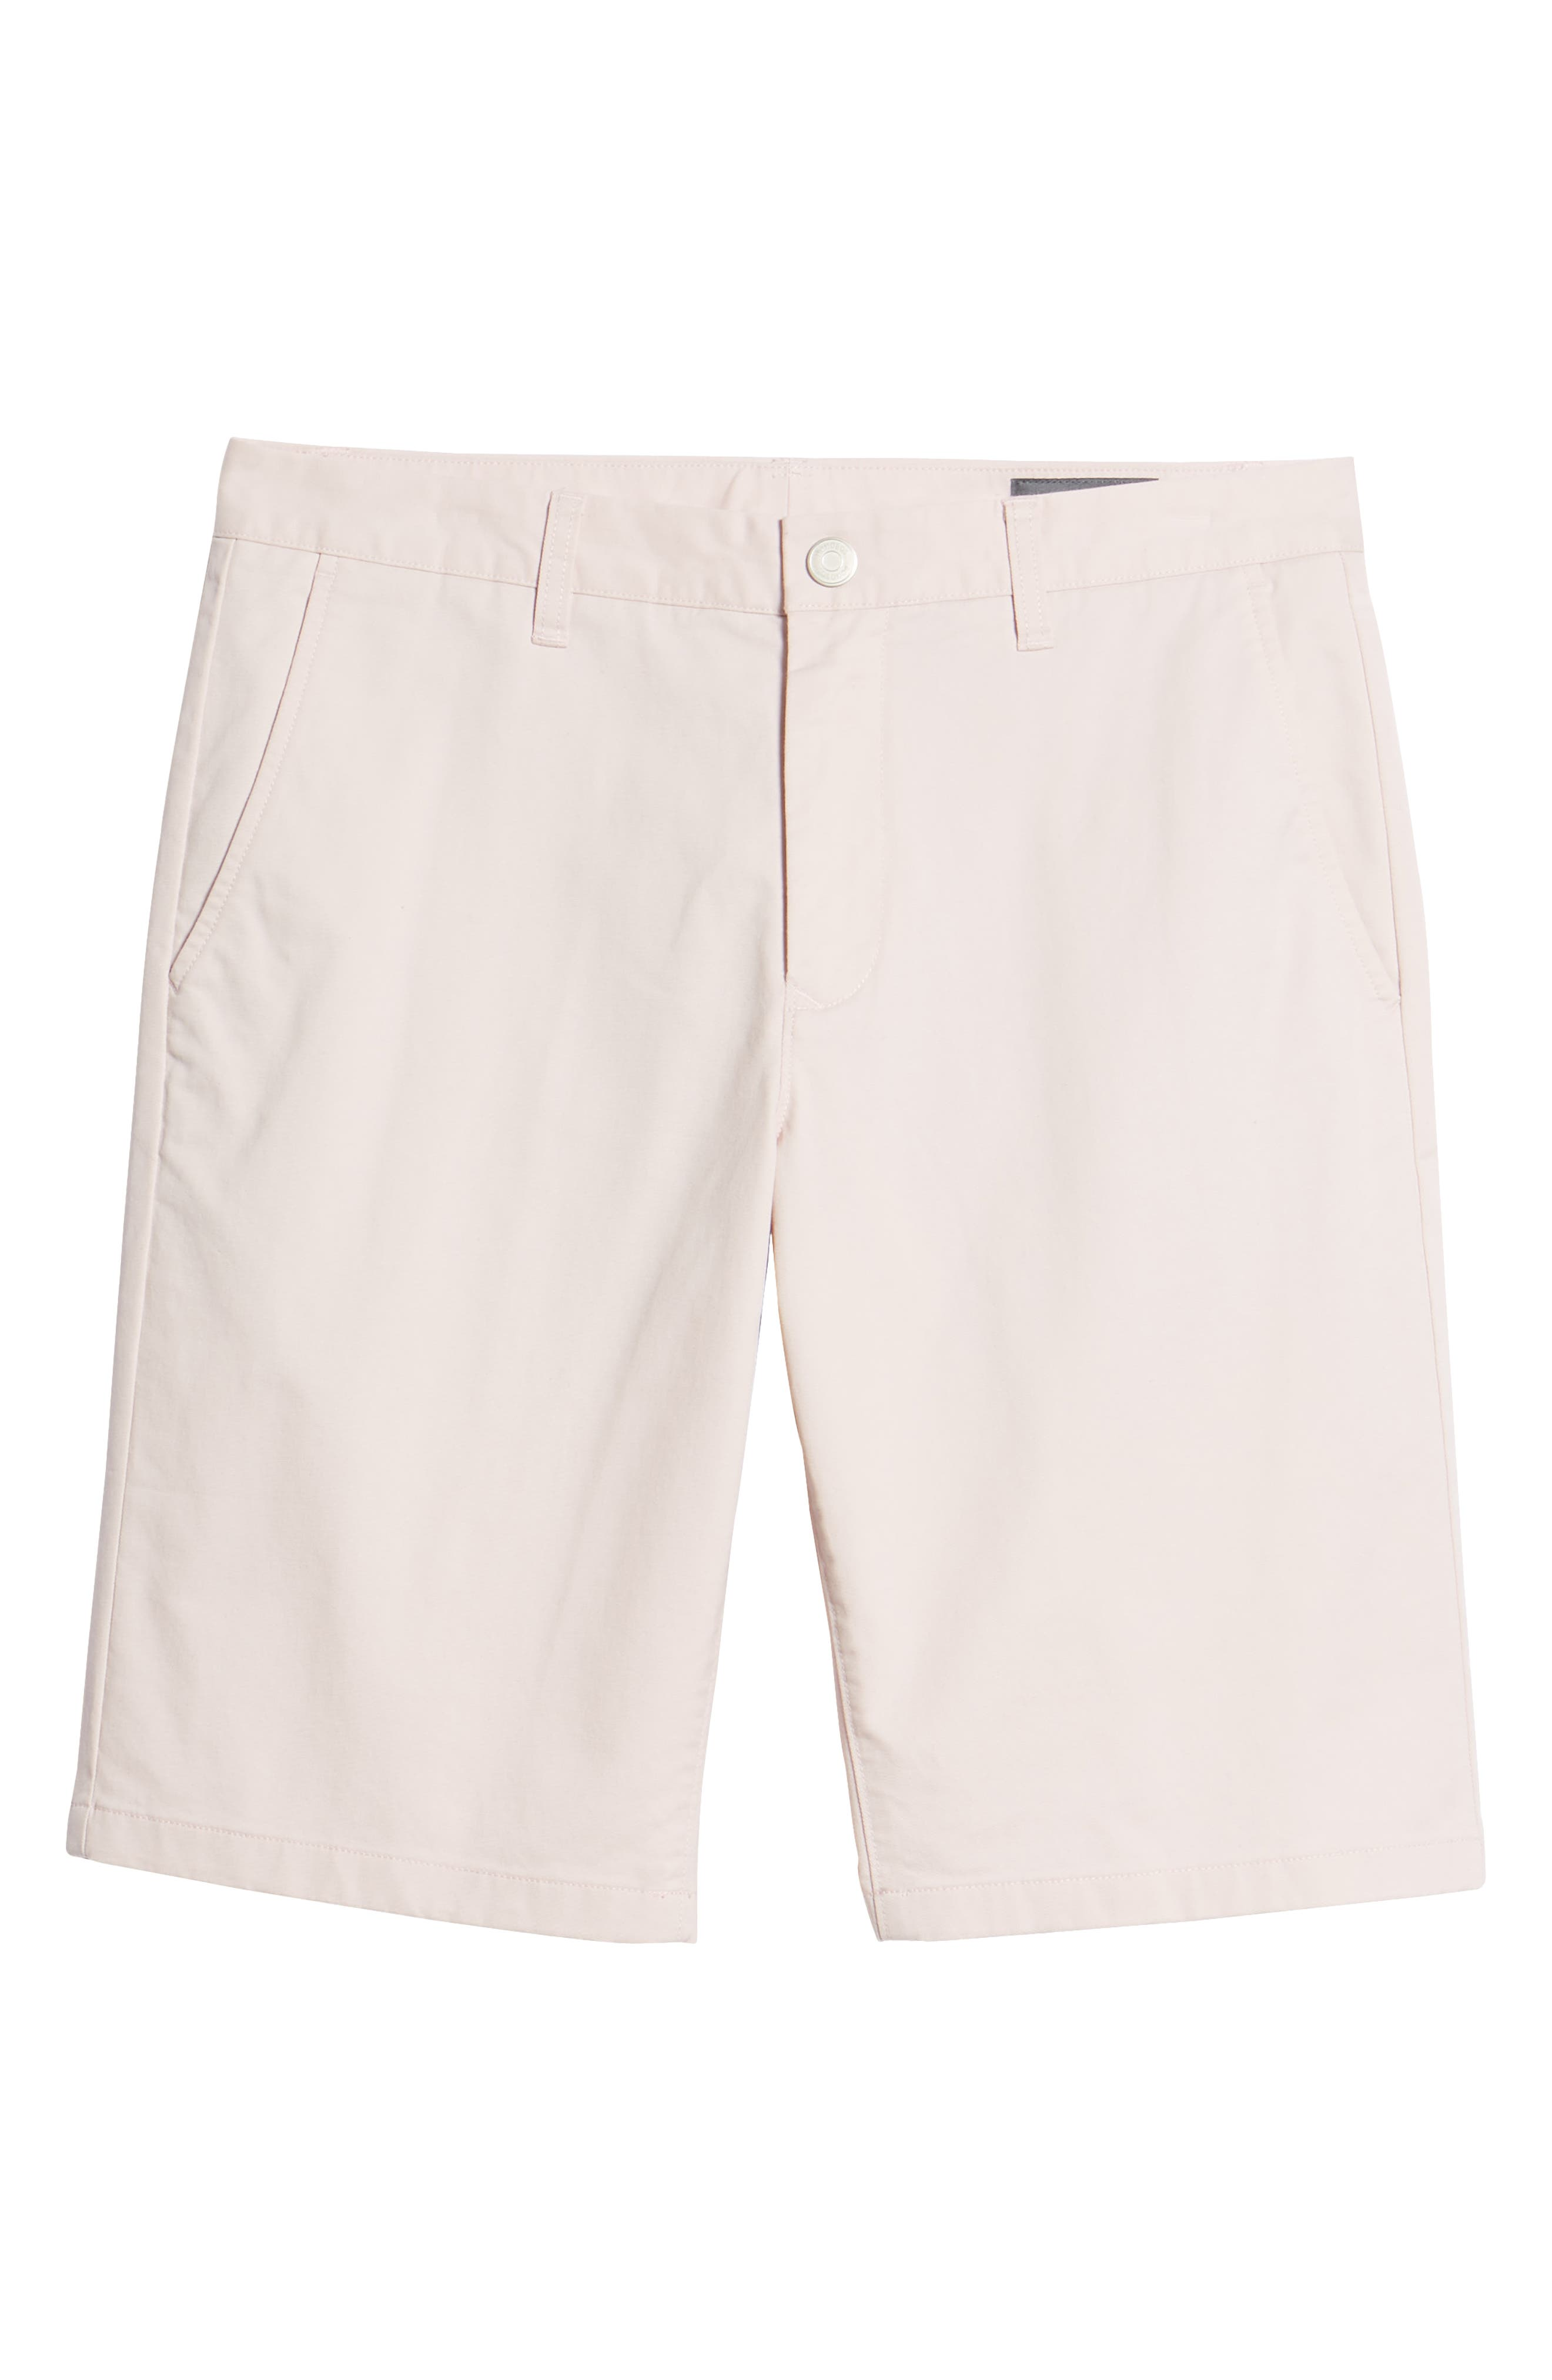 Stretch Washed Chino 11-Inch Shorts,                             Alternate thumbnail 117, color,